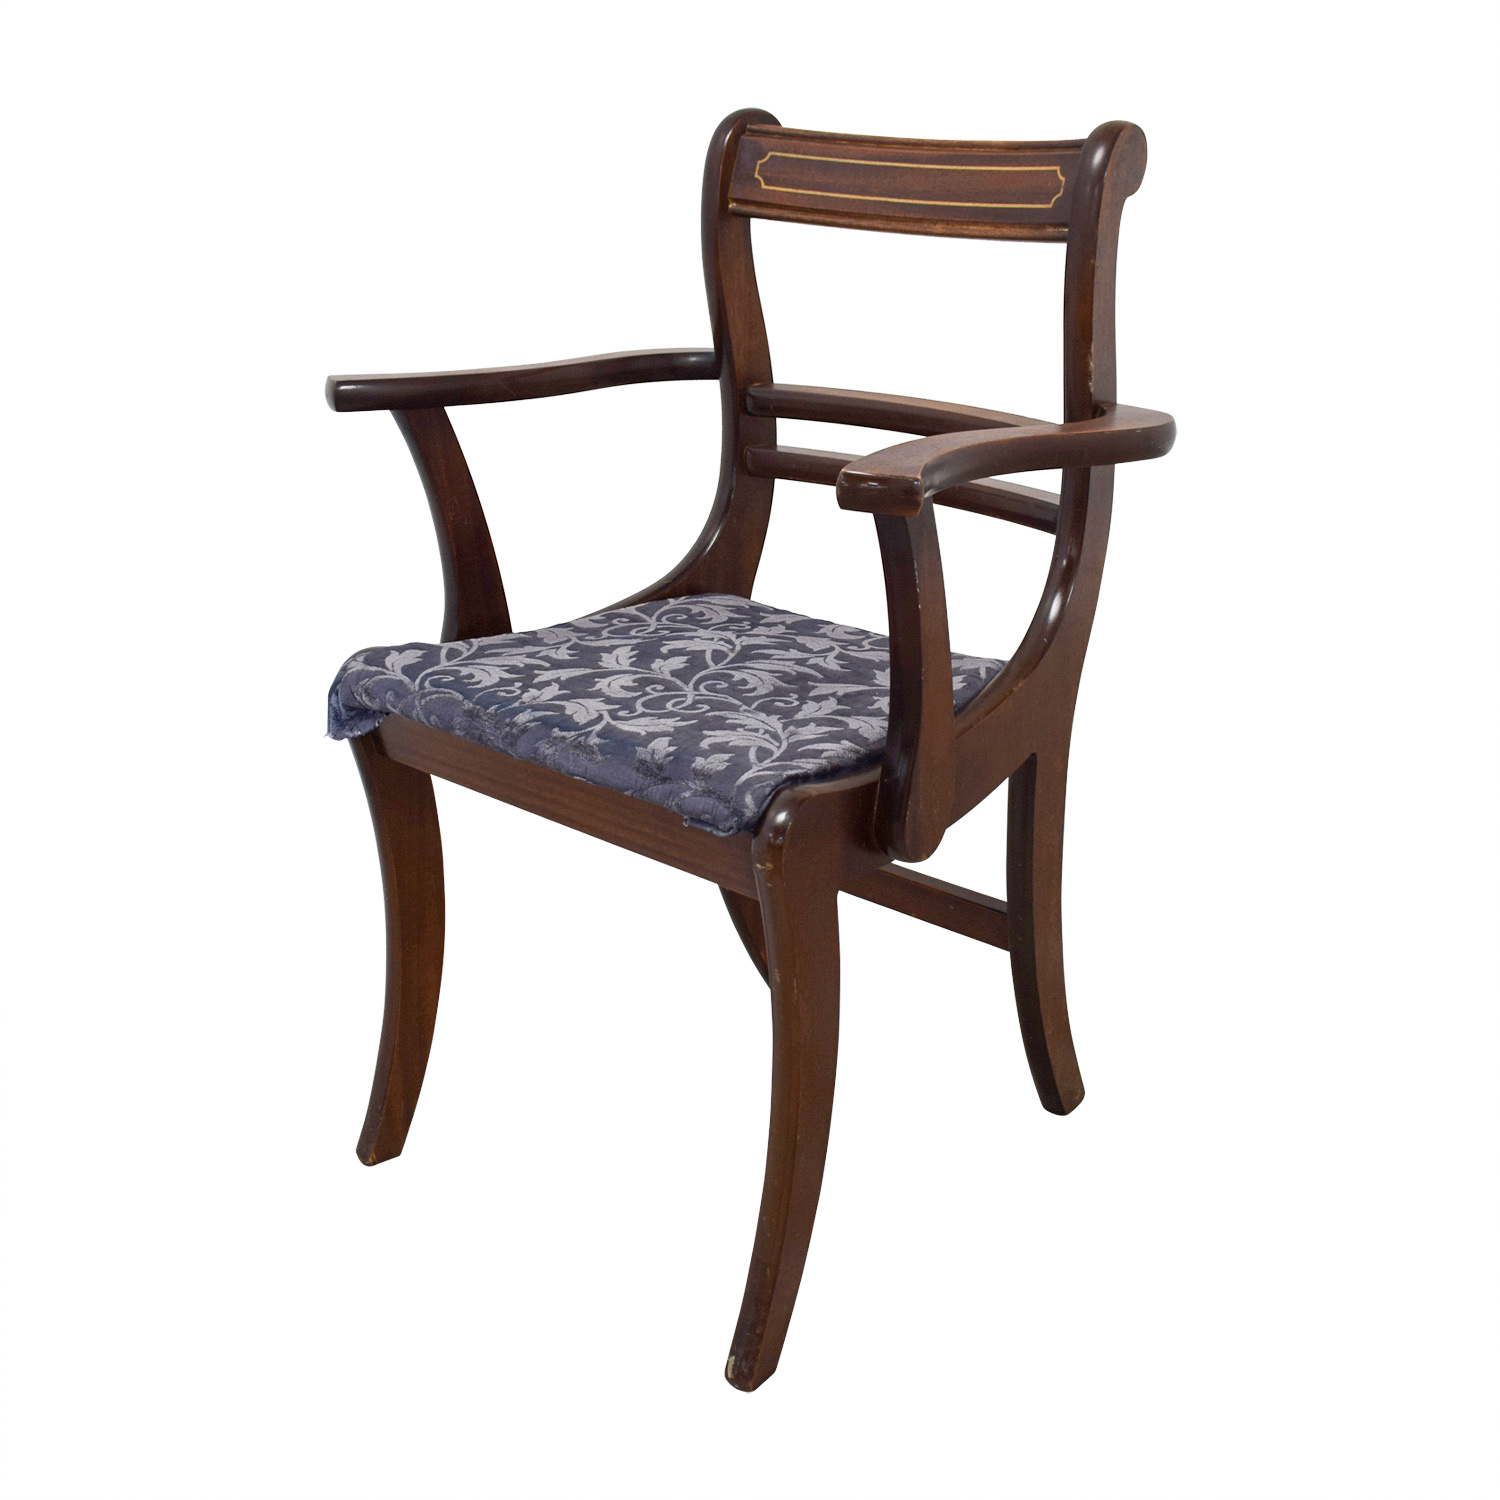 Wood Dining Chairs with Removable Blue Cushions Chairs